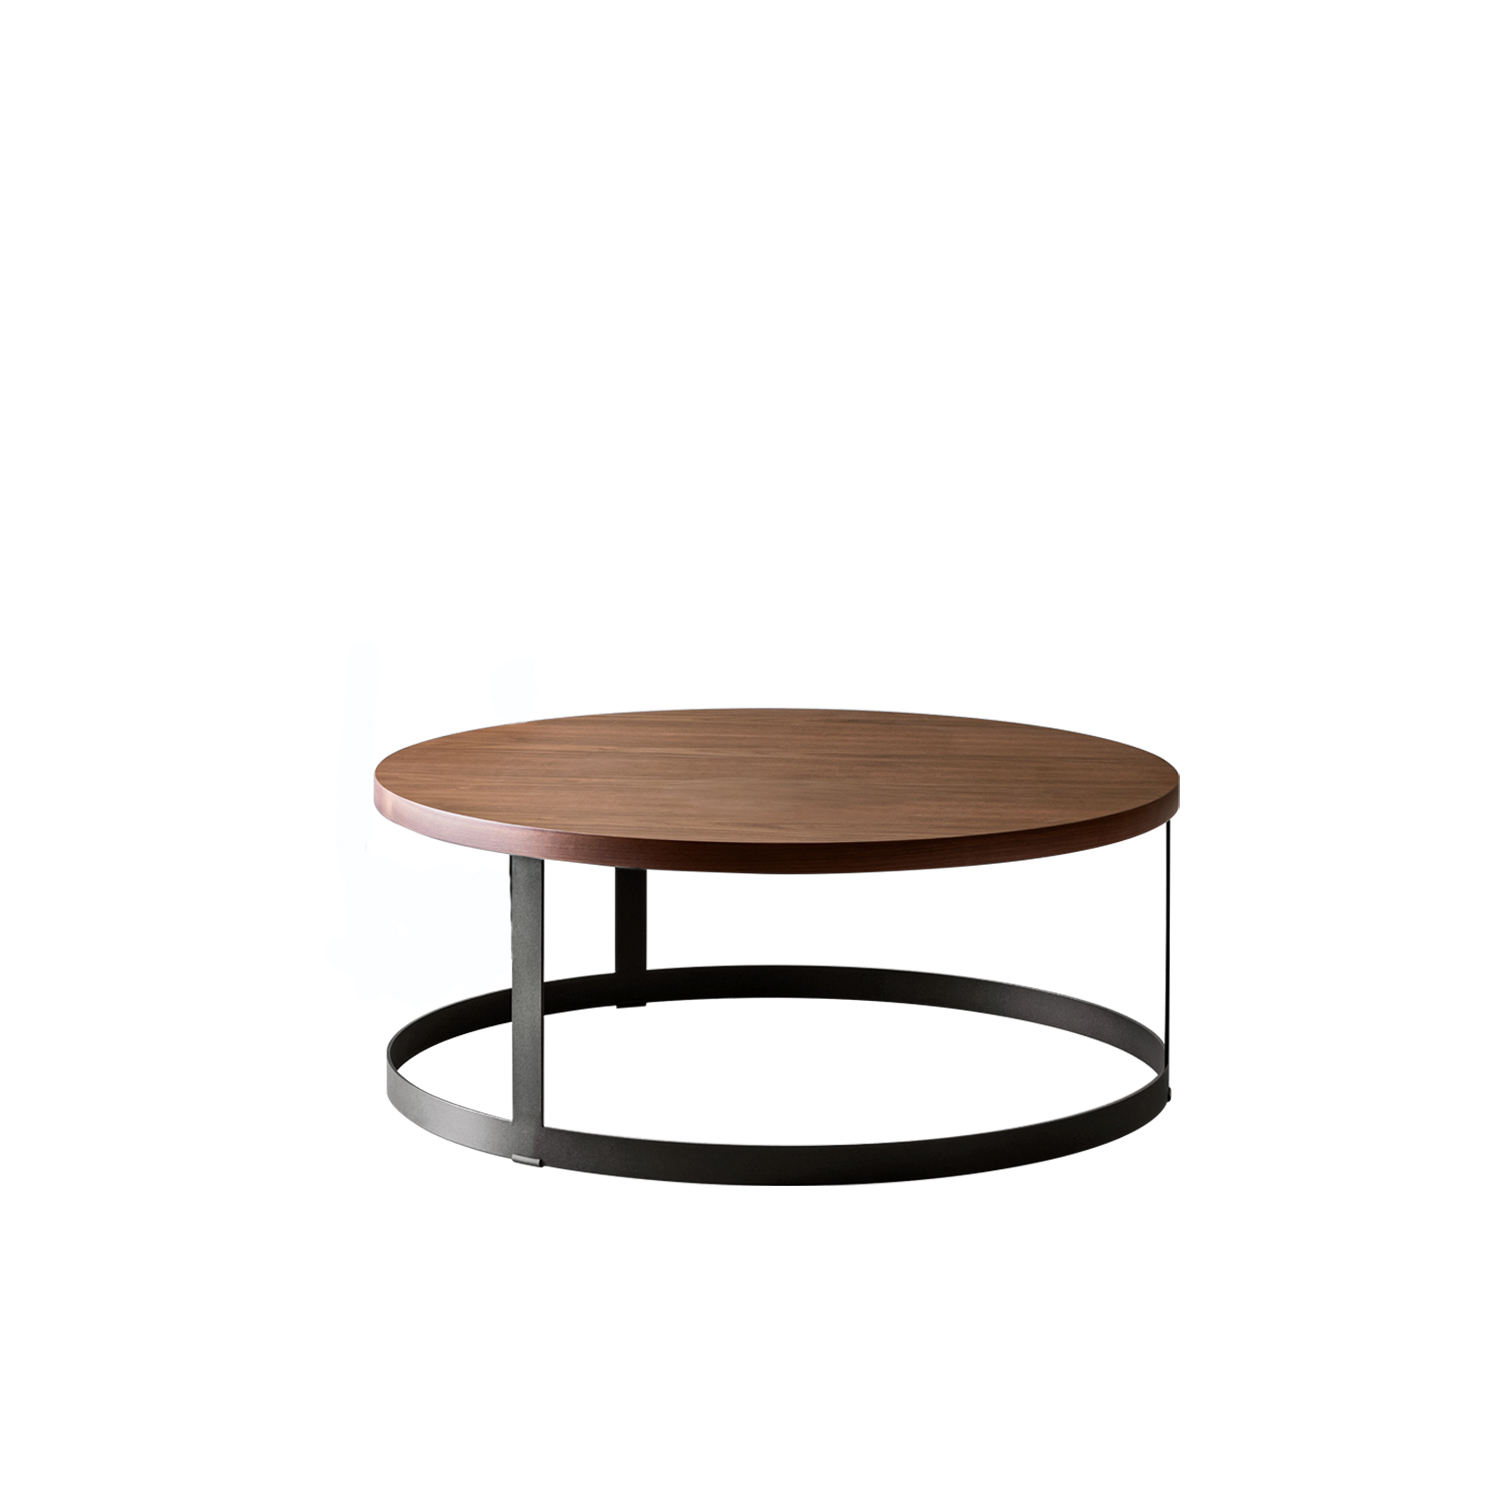 Zero Coffee Table - Zero approaches Eastern philosophy with the contrast between full and empty shapes, capturing the magic of the Japanese Rising Sun with a table top. The structure is made of lacquered steel sheet, the top in extra-clear glass or wood essence.  | Matter of Stuff